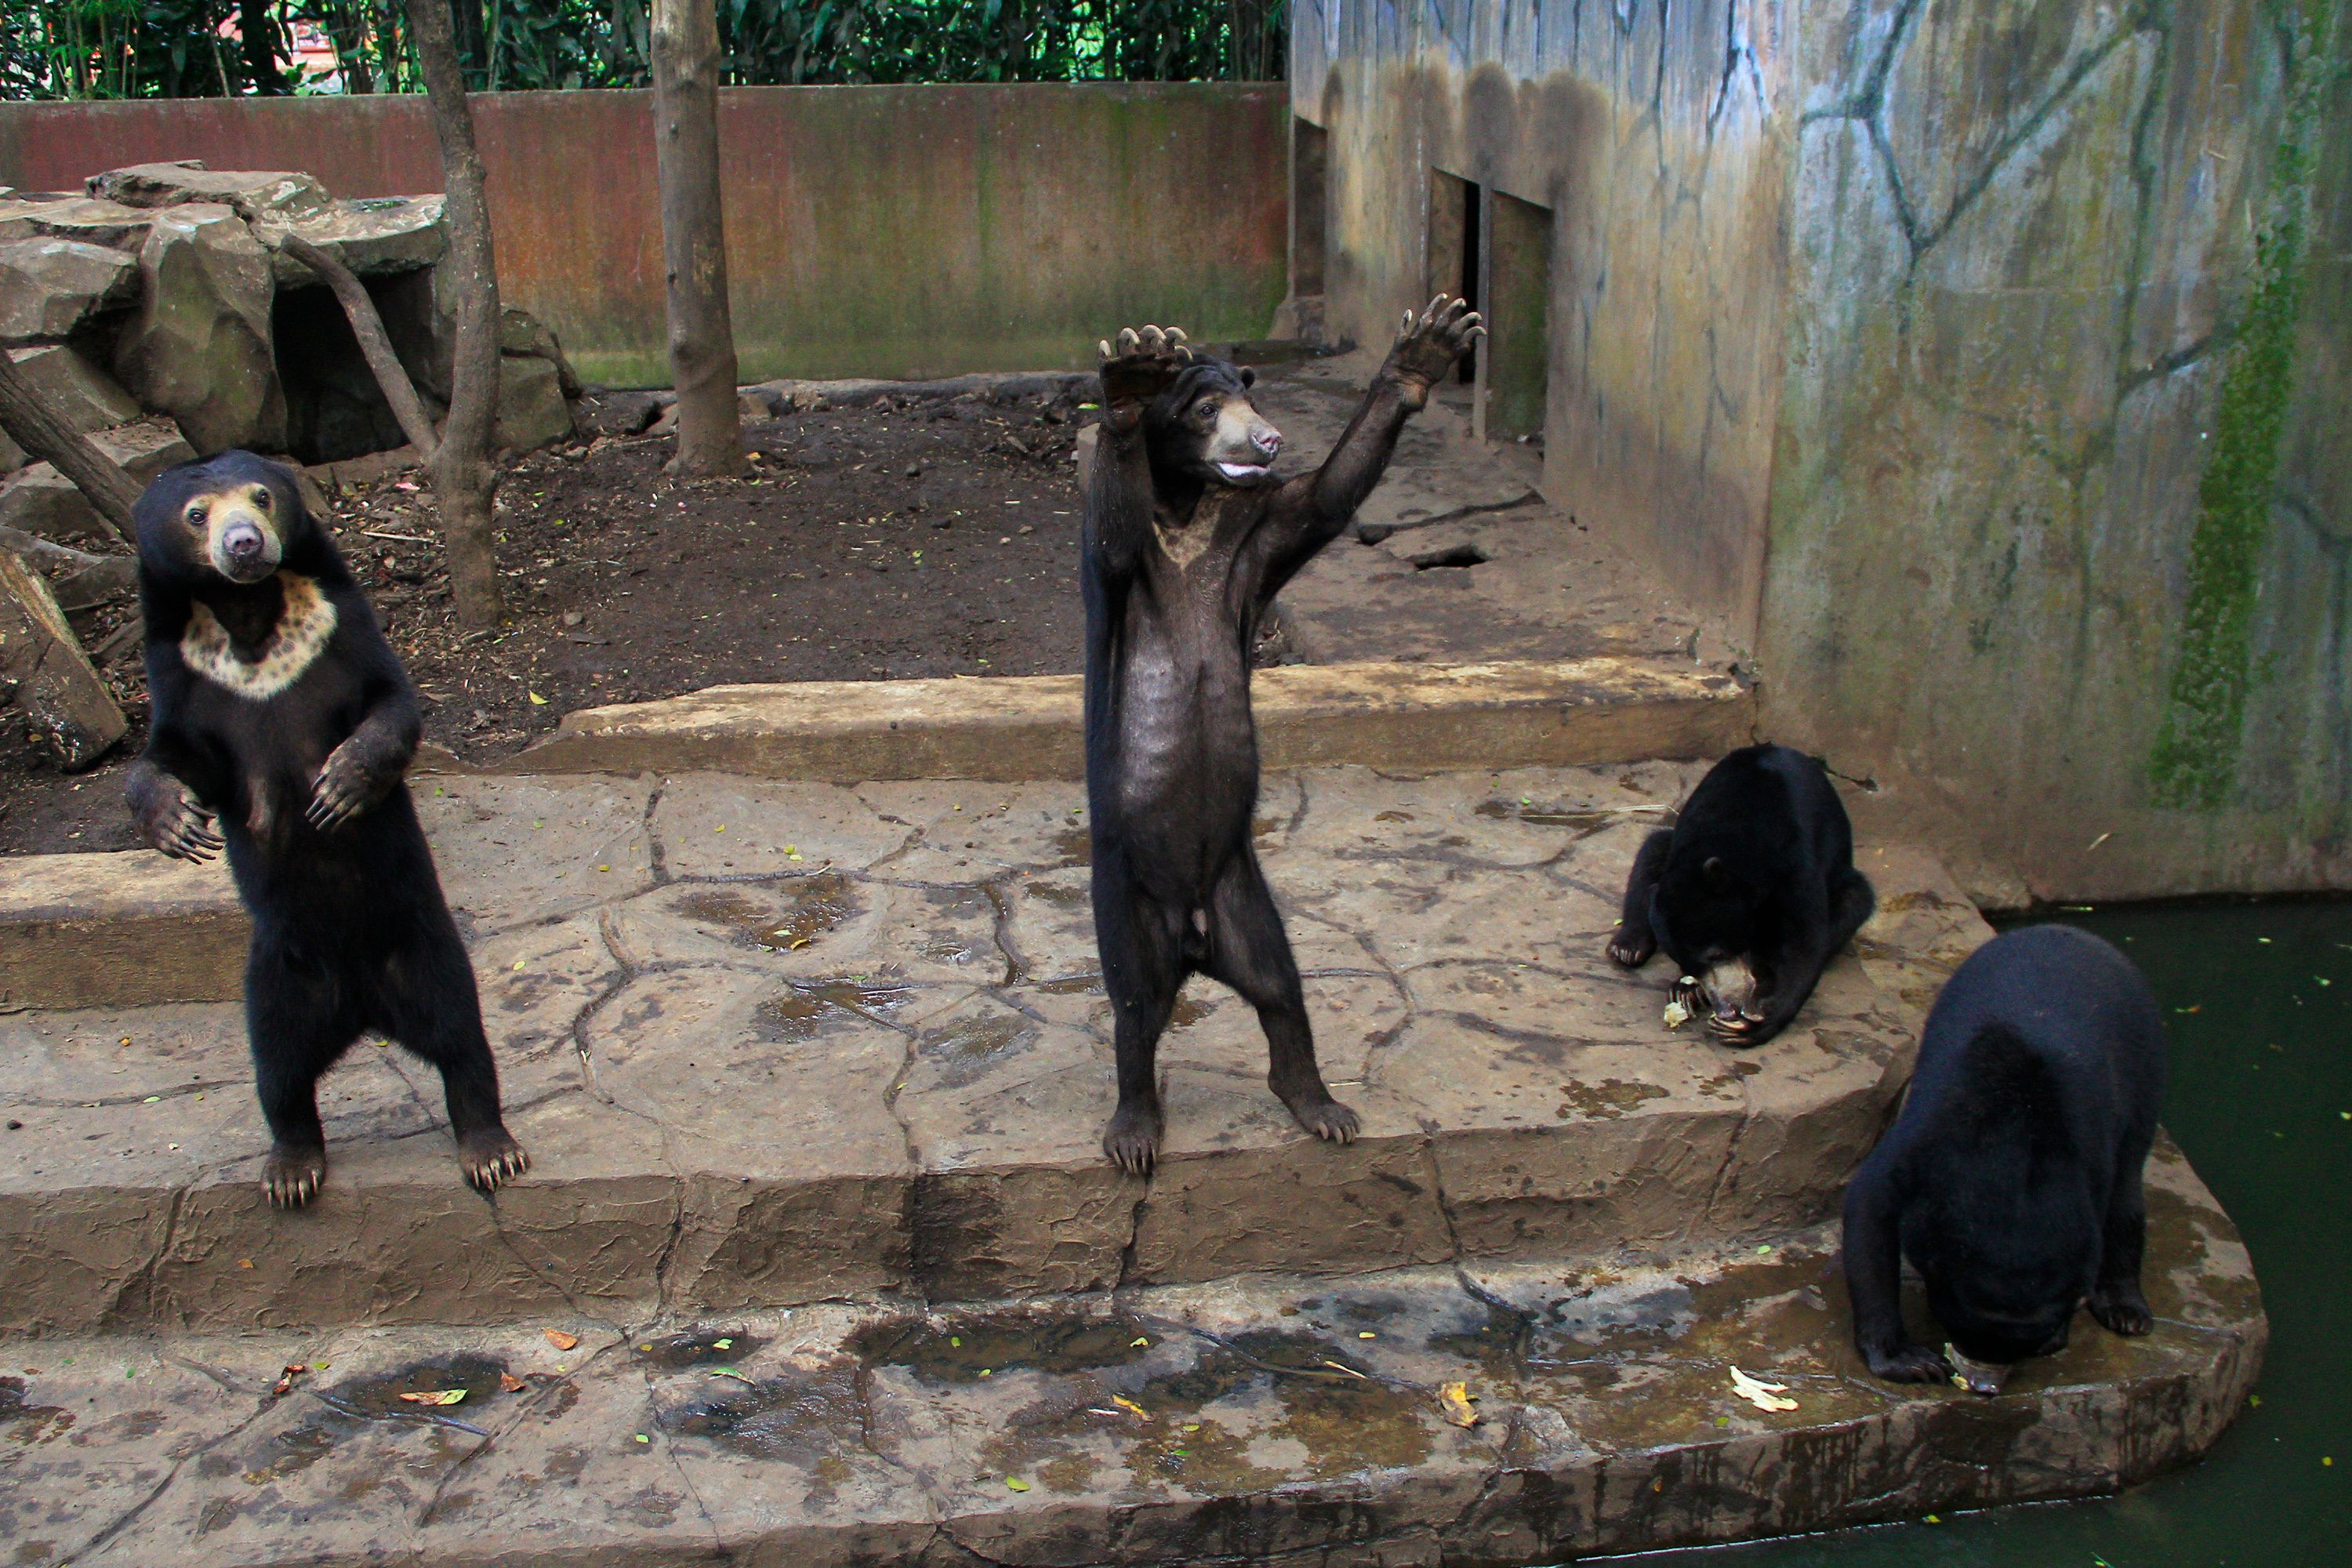 Captive sun bears appear to beg for food from visitors at a zoo in Bandung, Indonesia, on Jan. 19.